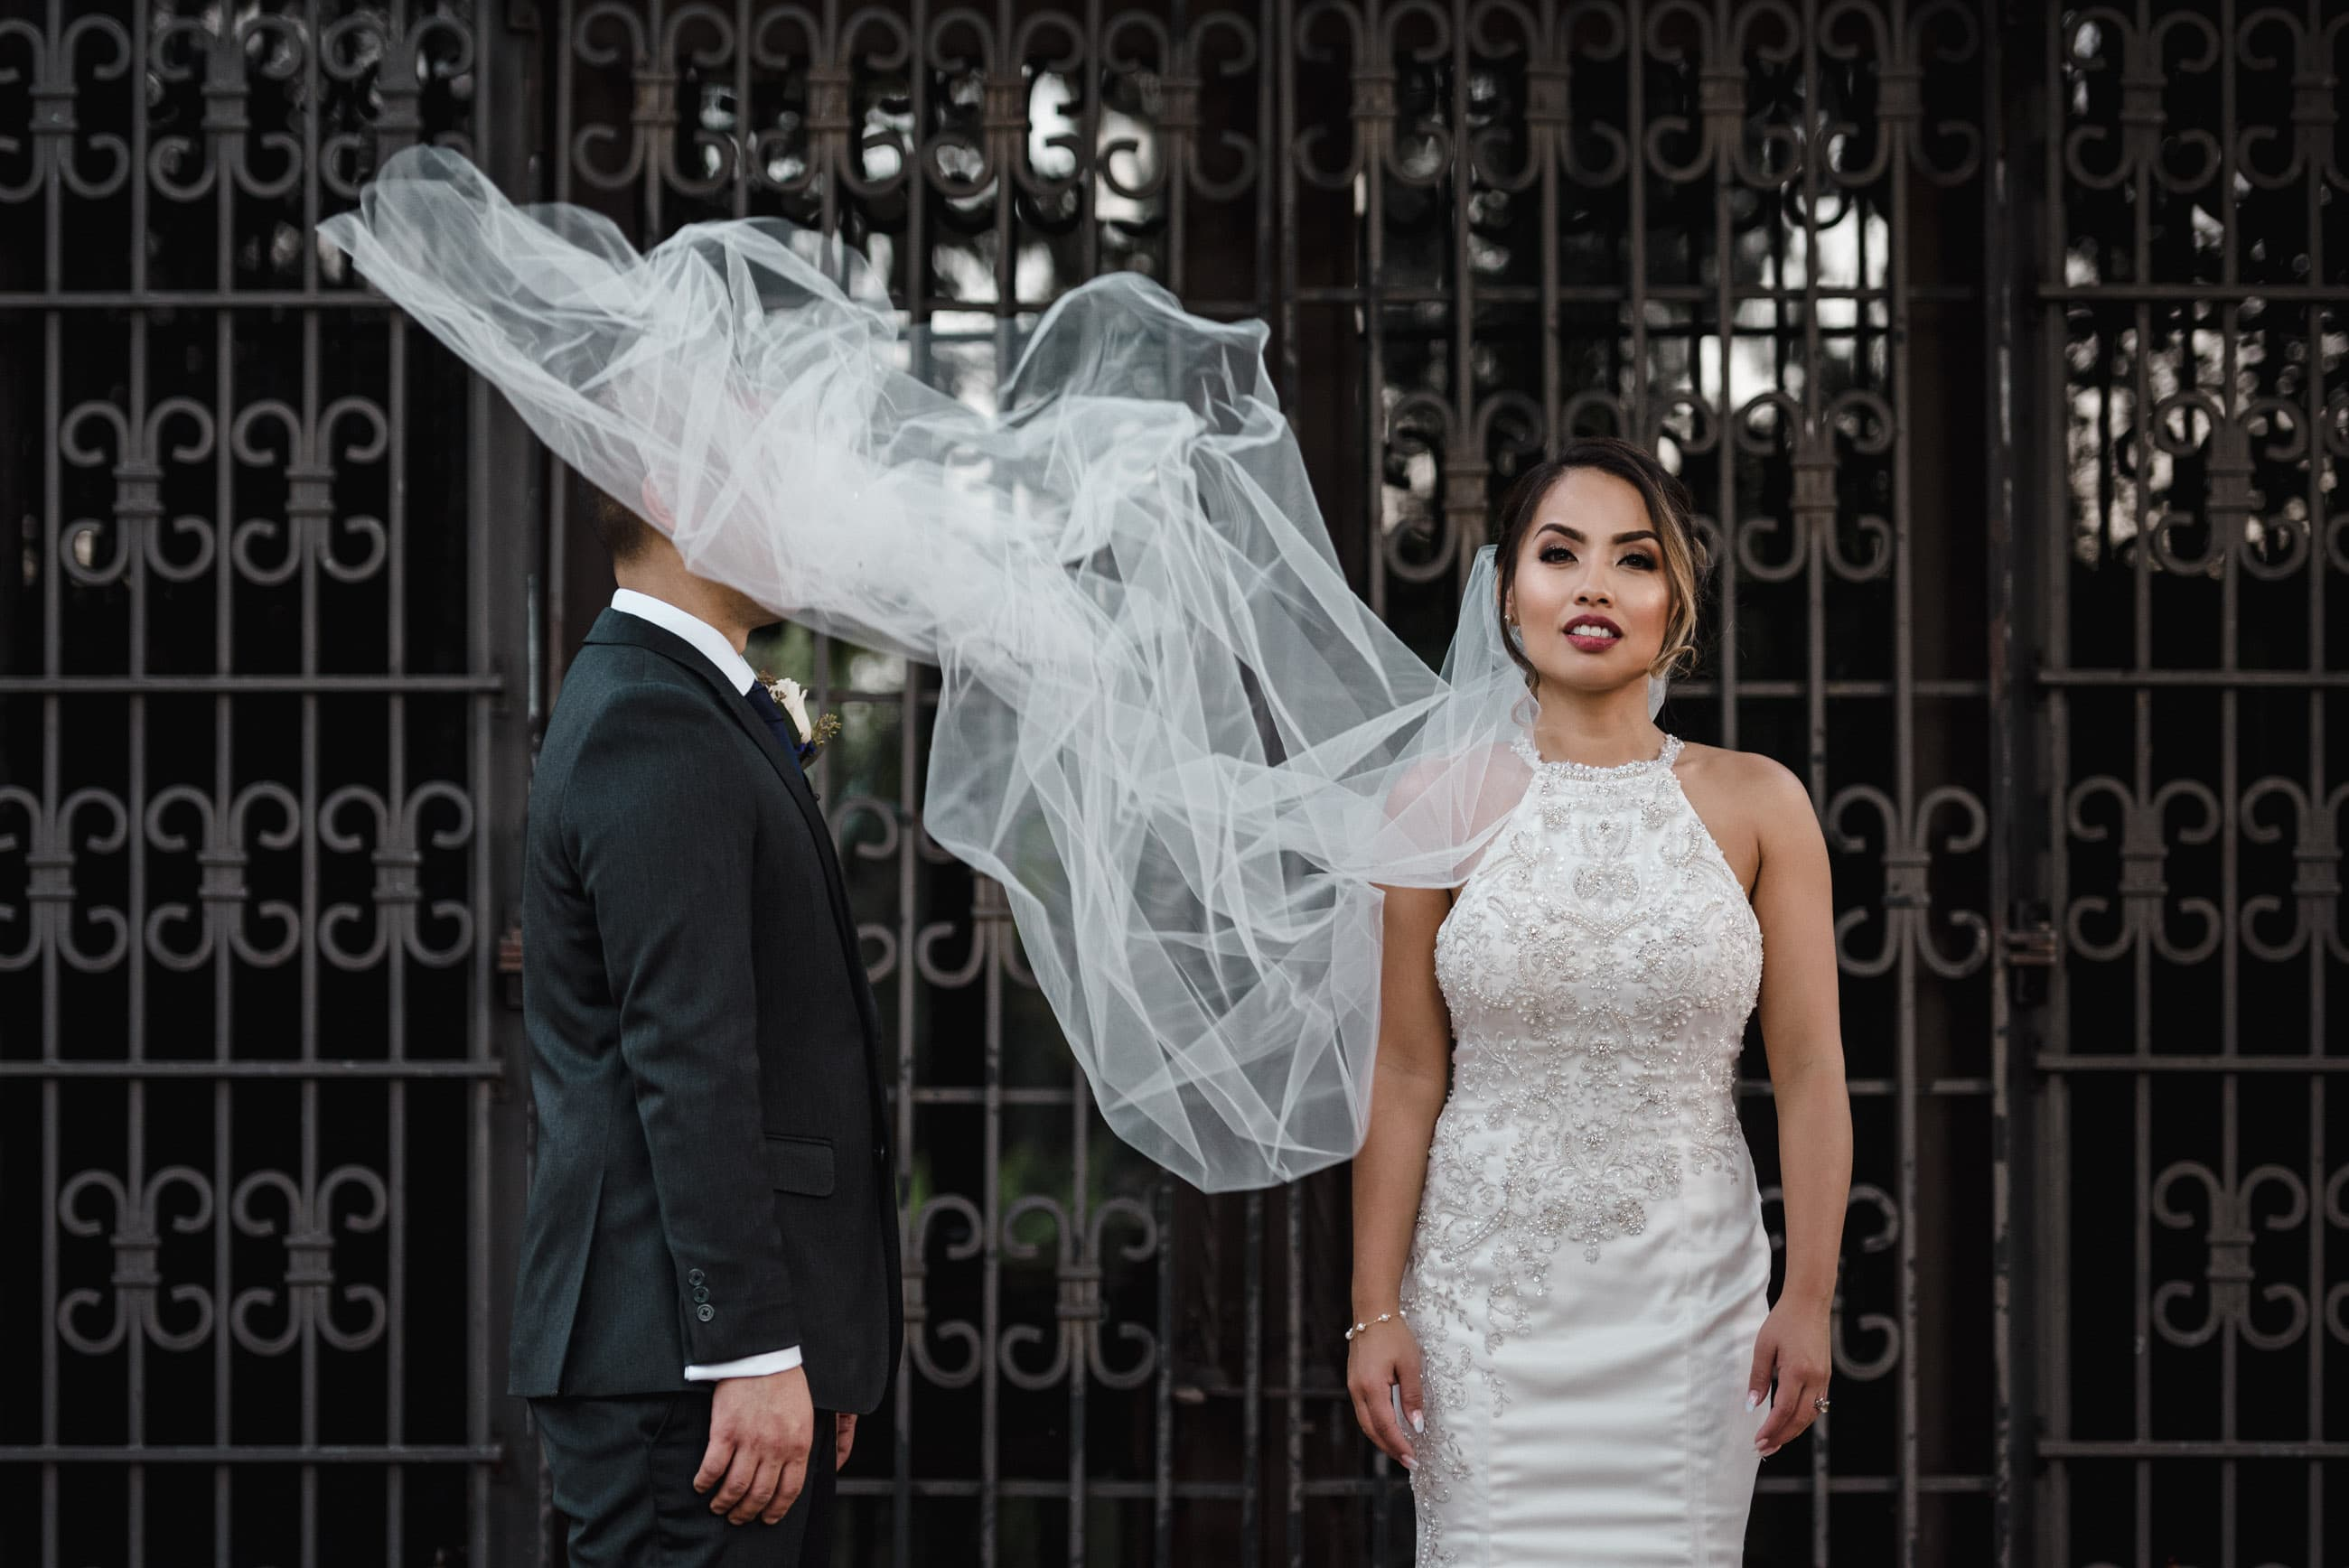 bride-and groom-artistic-portrait photography is subjective